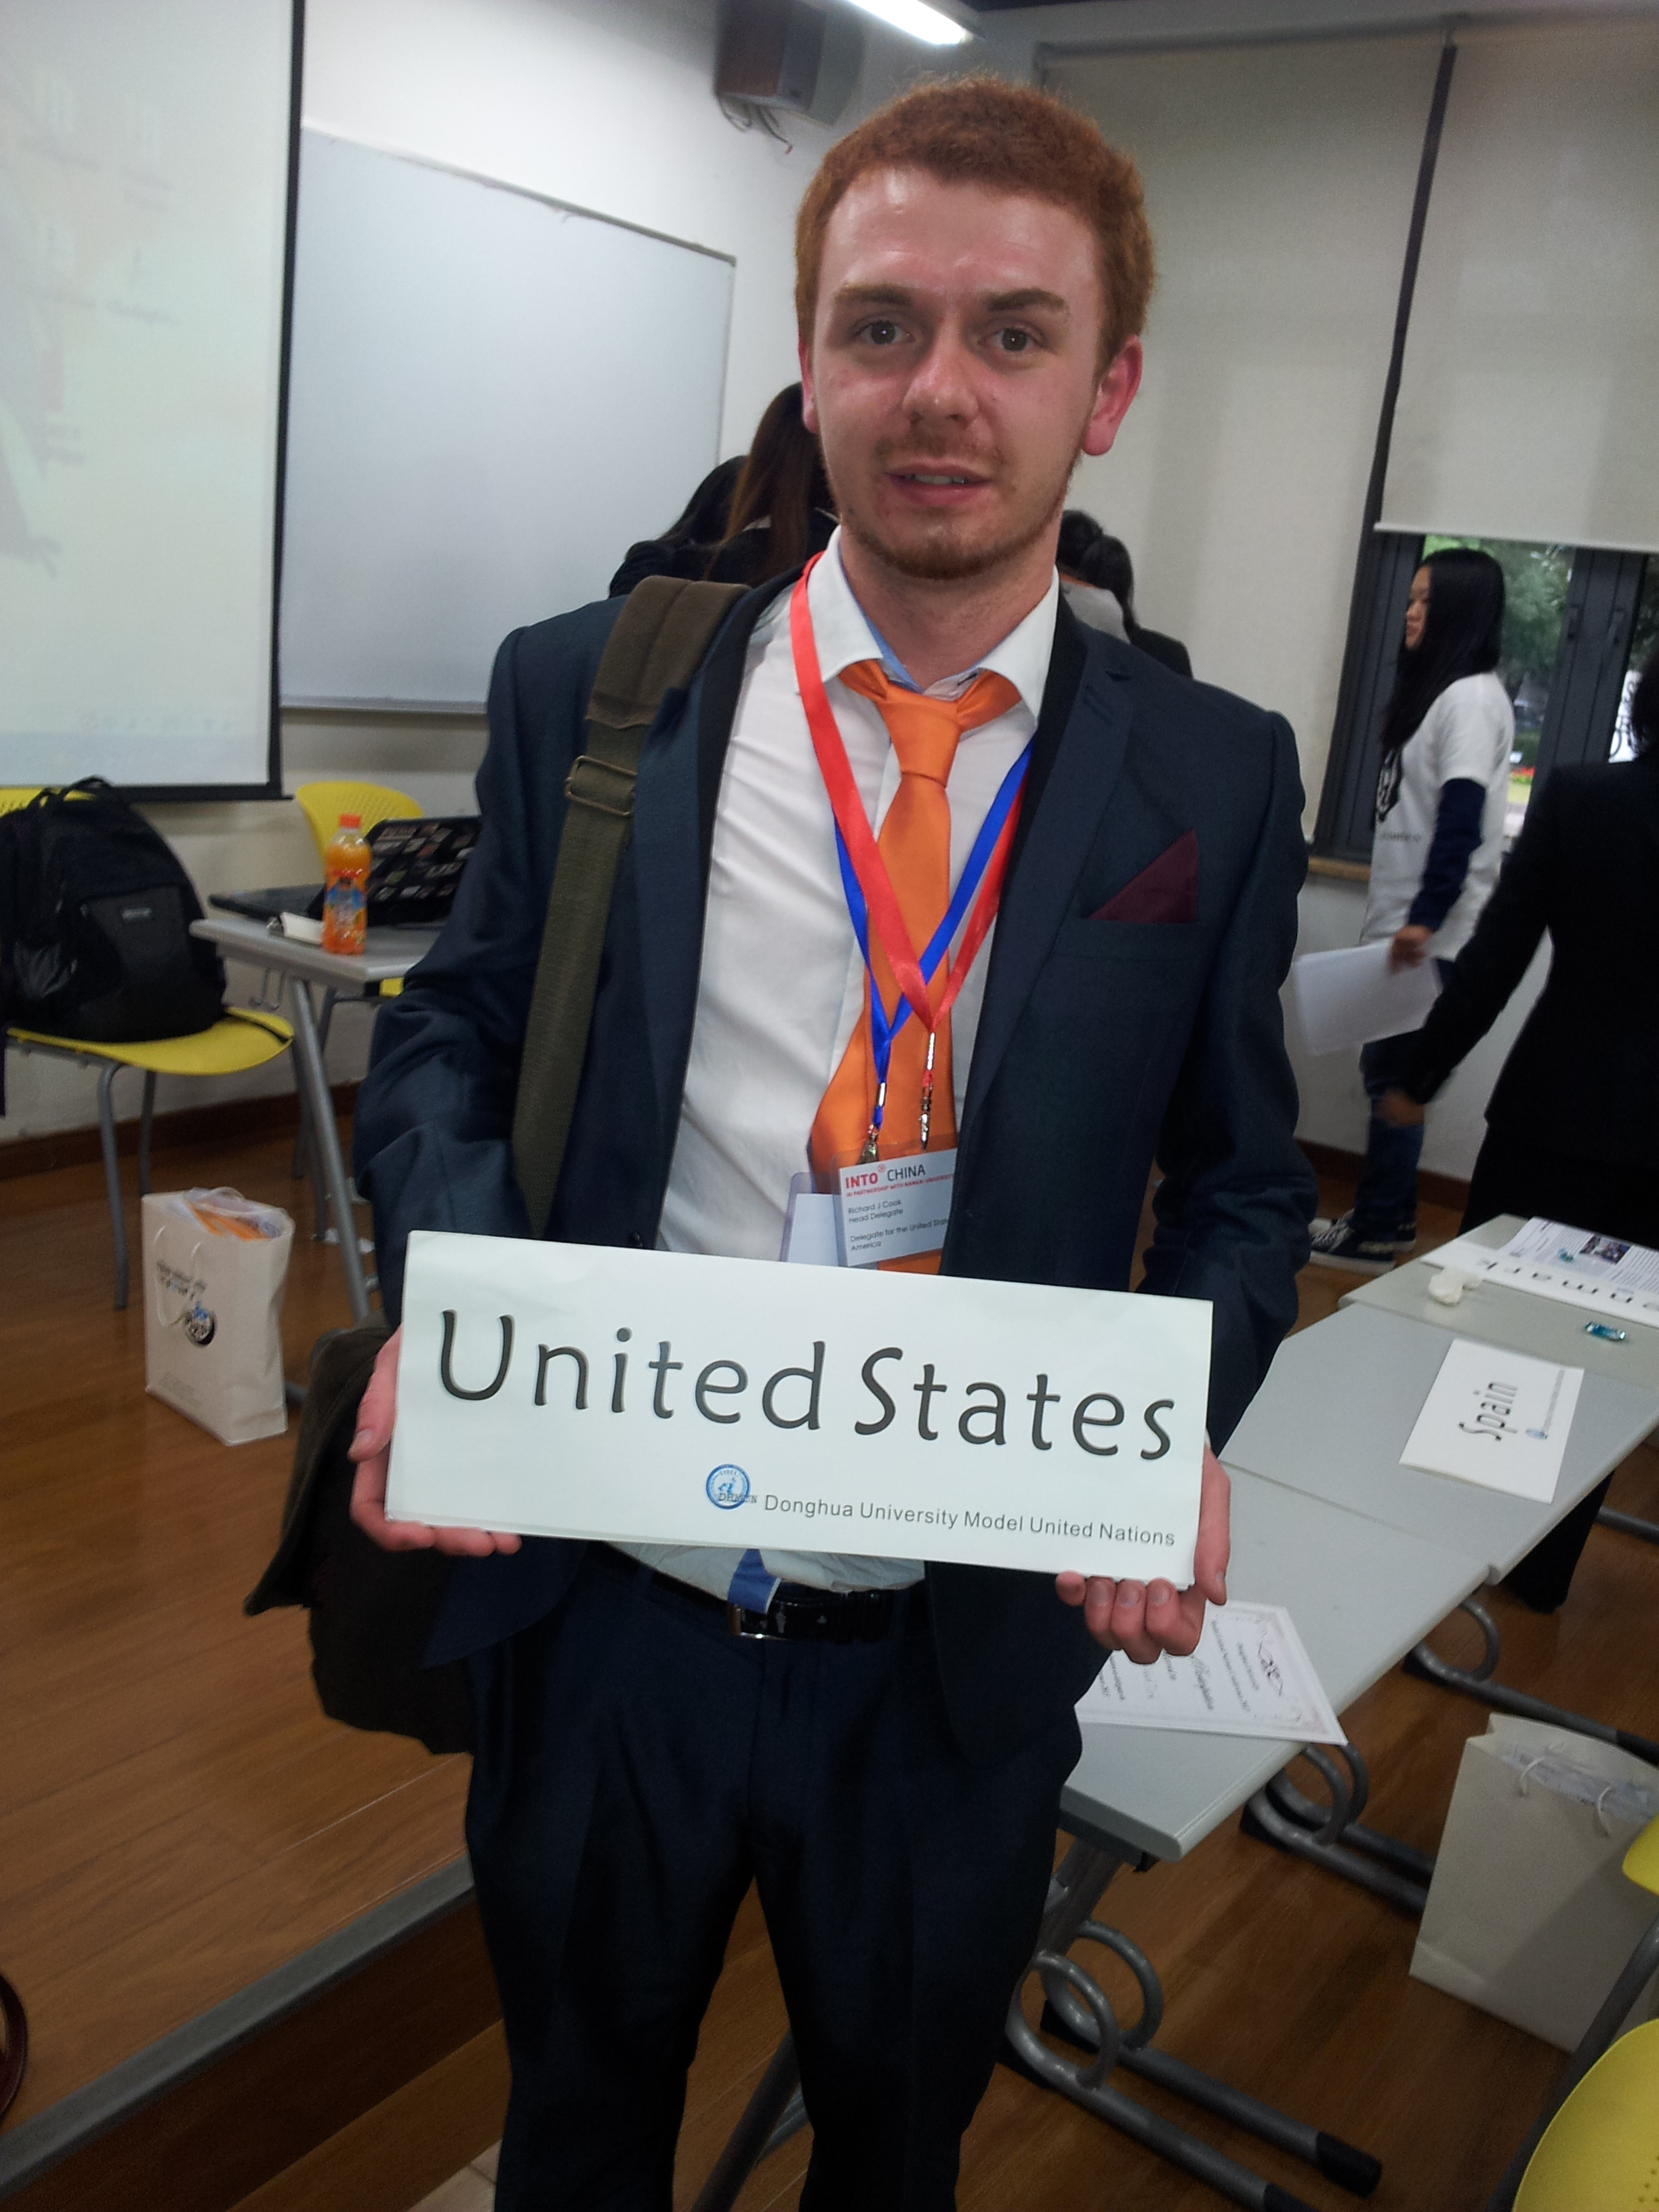 DHMUN - a United Nations youth conference